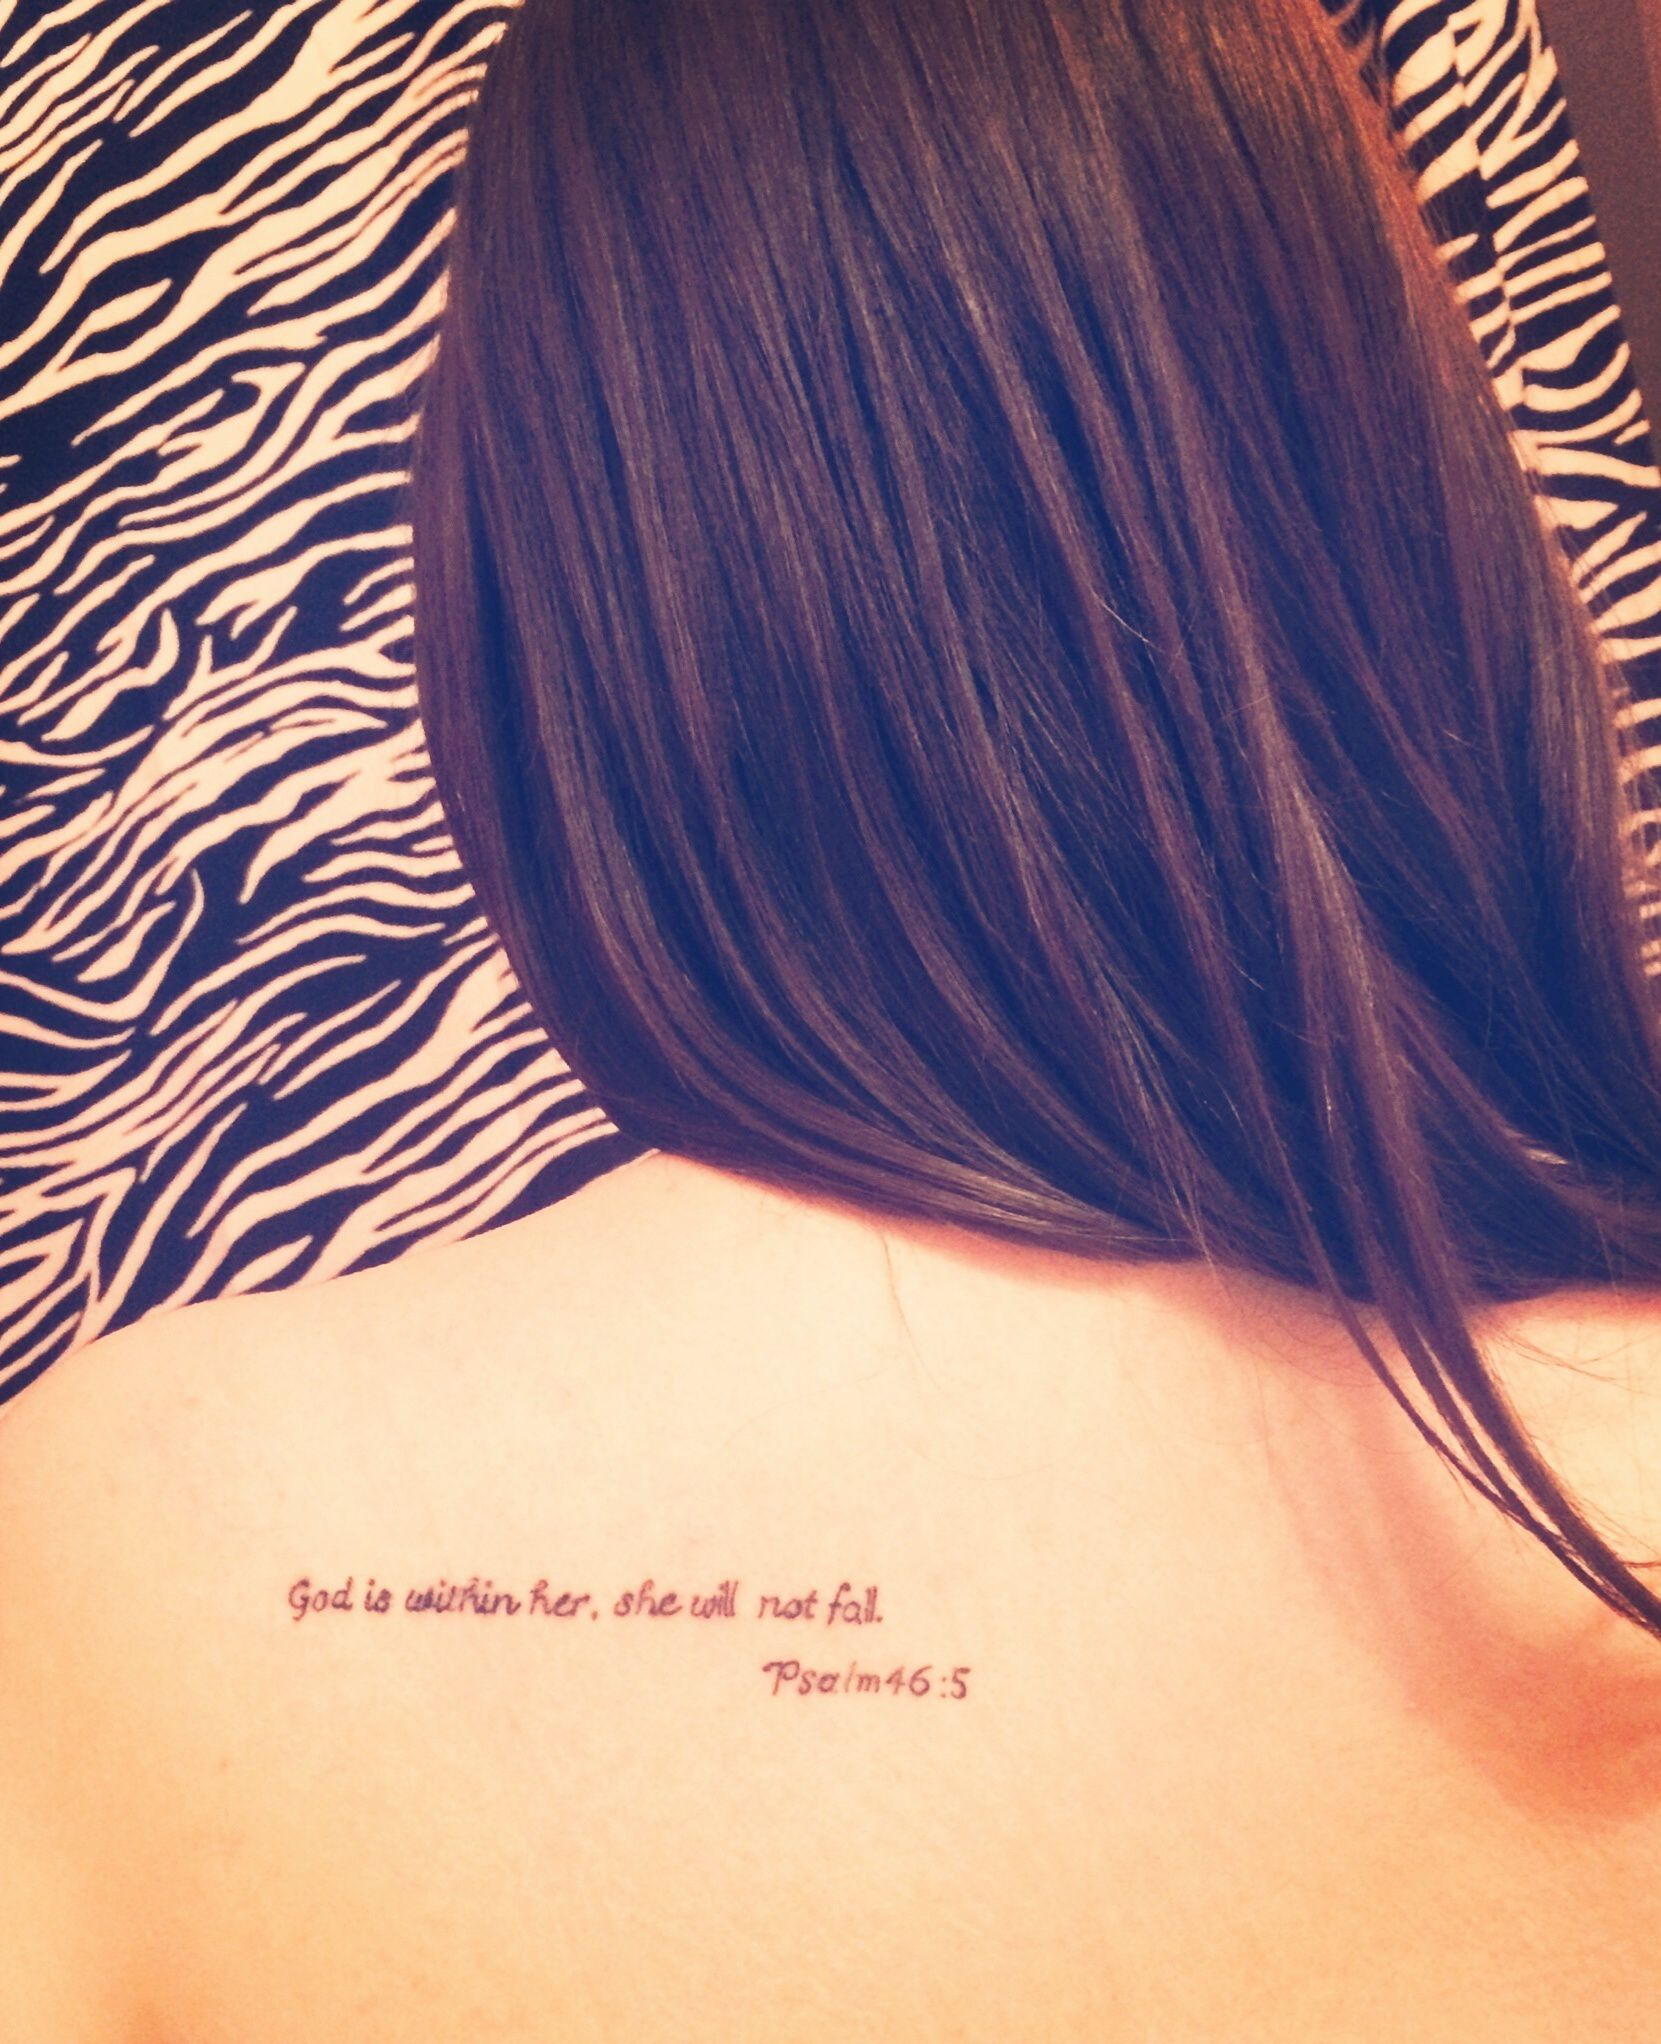 God Is Within Her She Will Not Fall Psalm 465 Tattoos